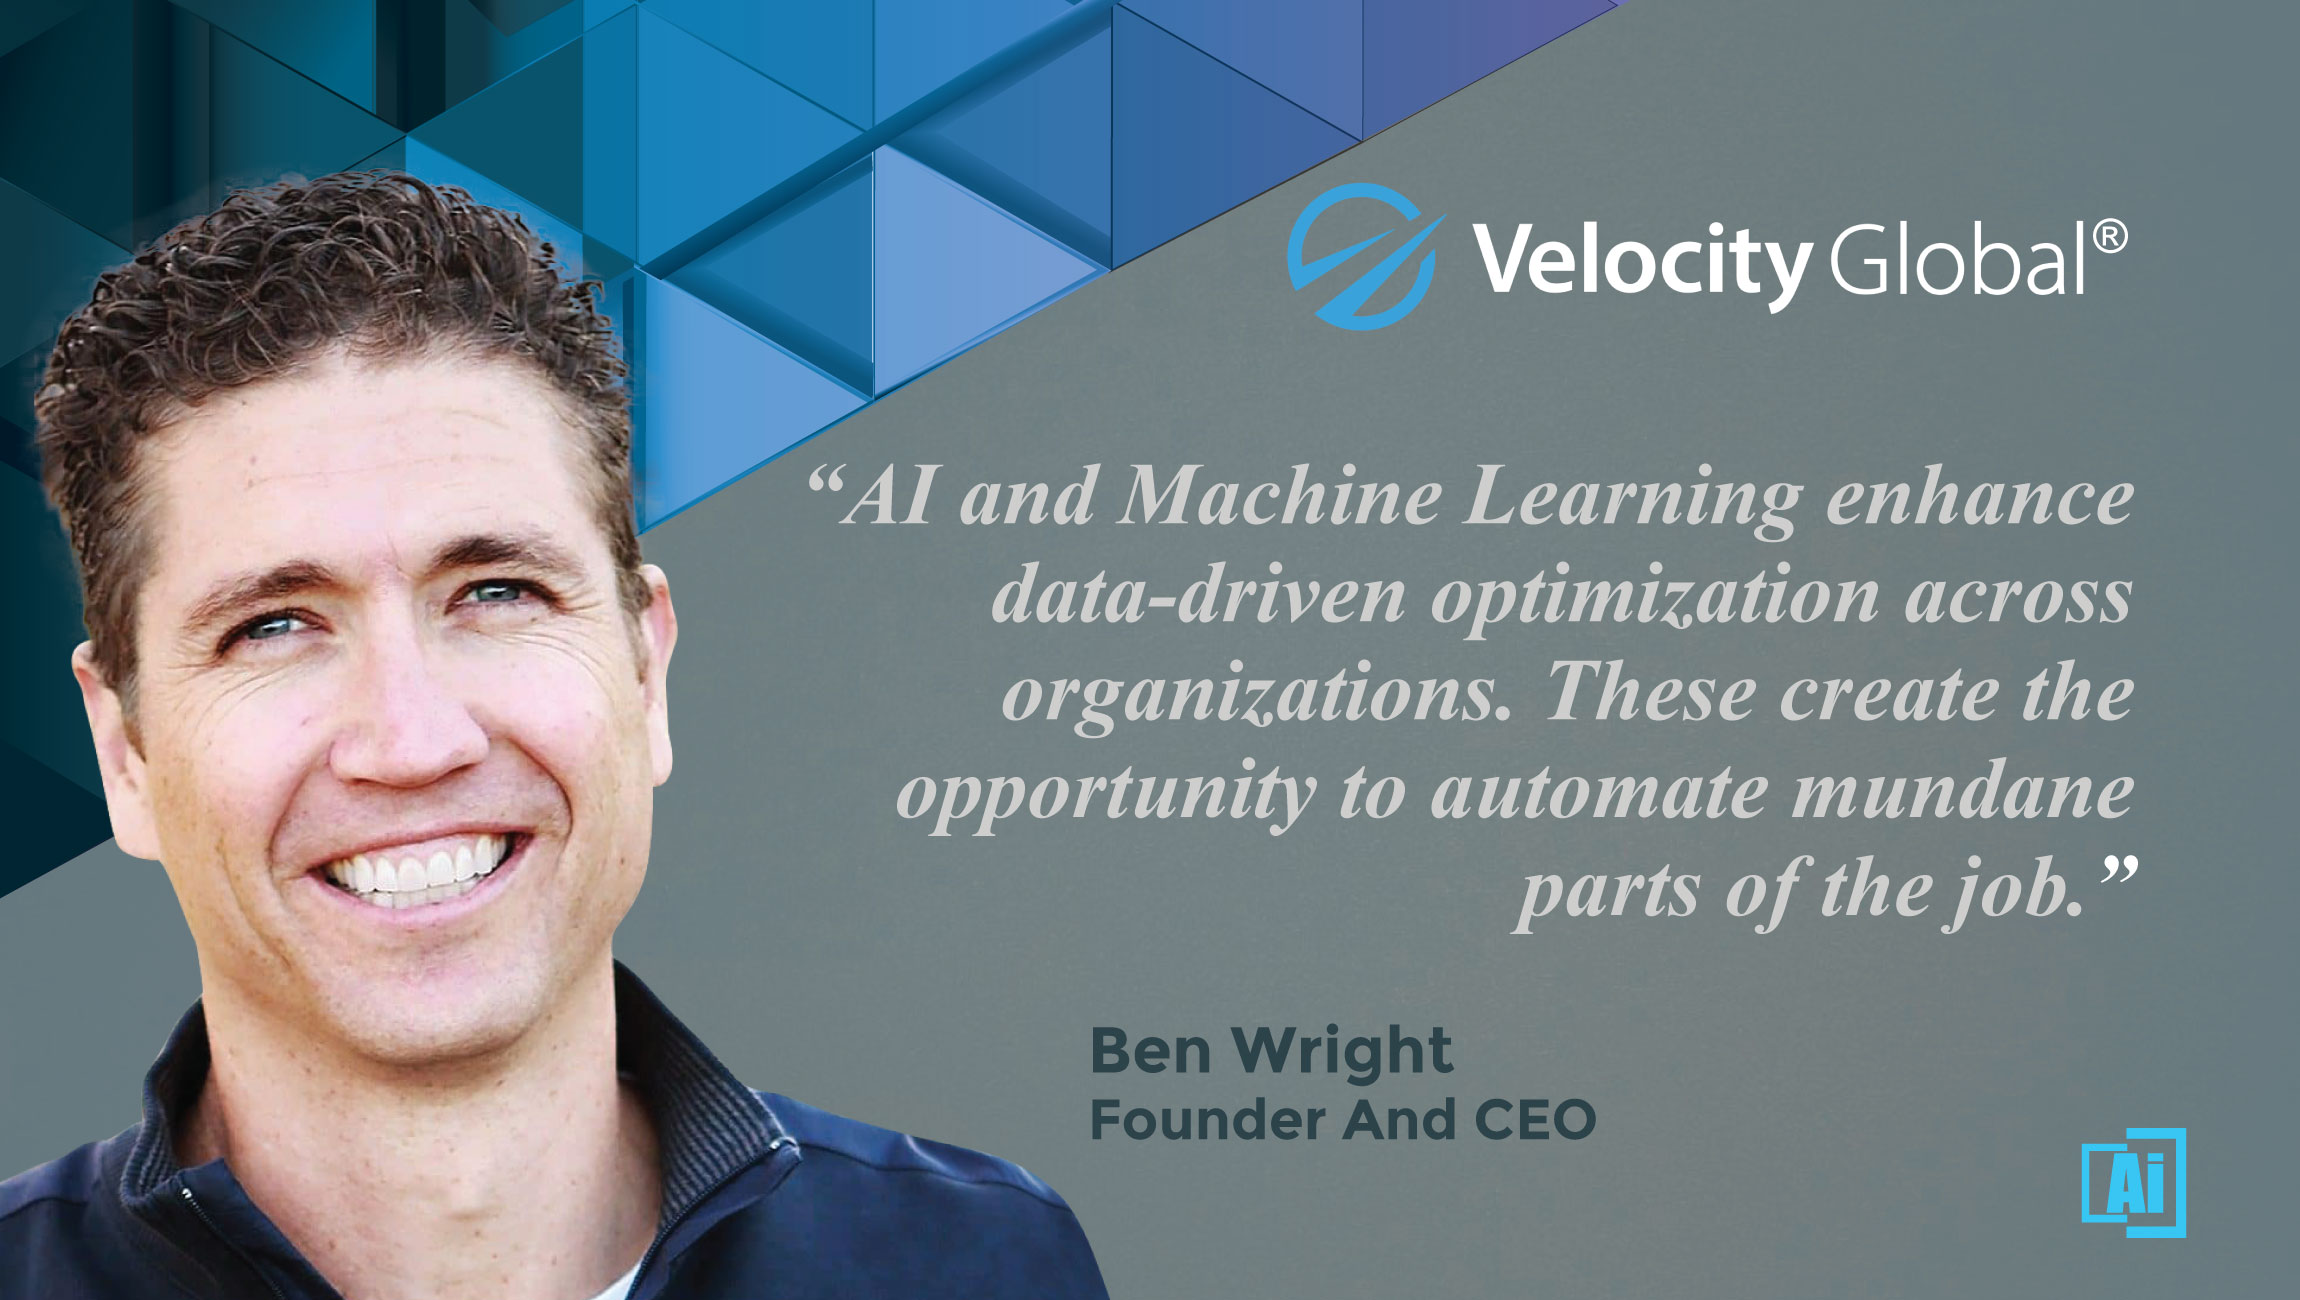 AiThority Interview With Ben Wright, Founder and CEO of Velocity Global